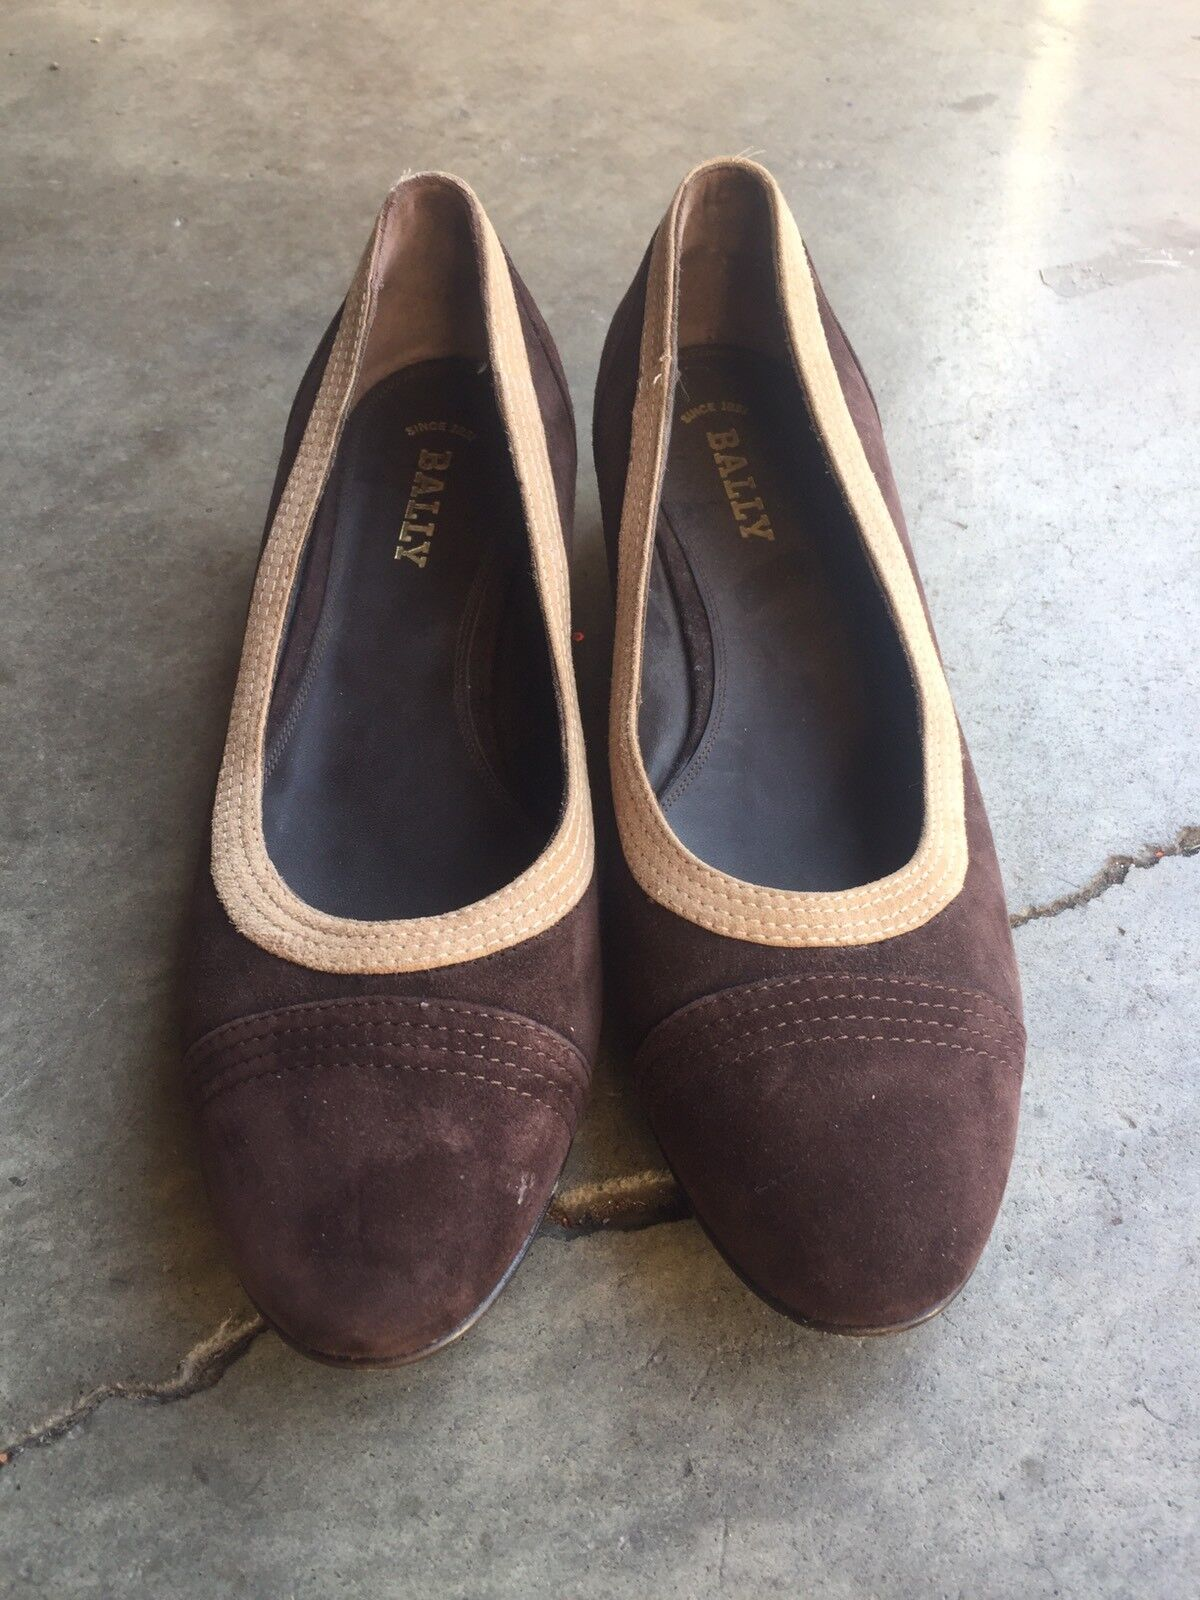 NWOB Bally sz Suede Leather Ballet Flats sz Bally 40 9.5 Brown 3db8c4